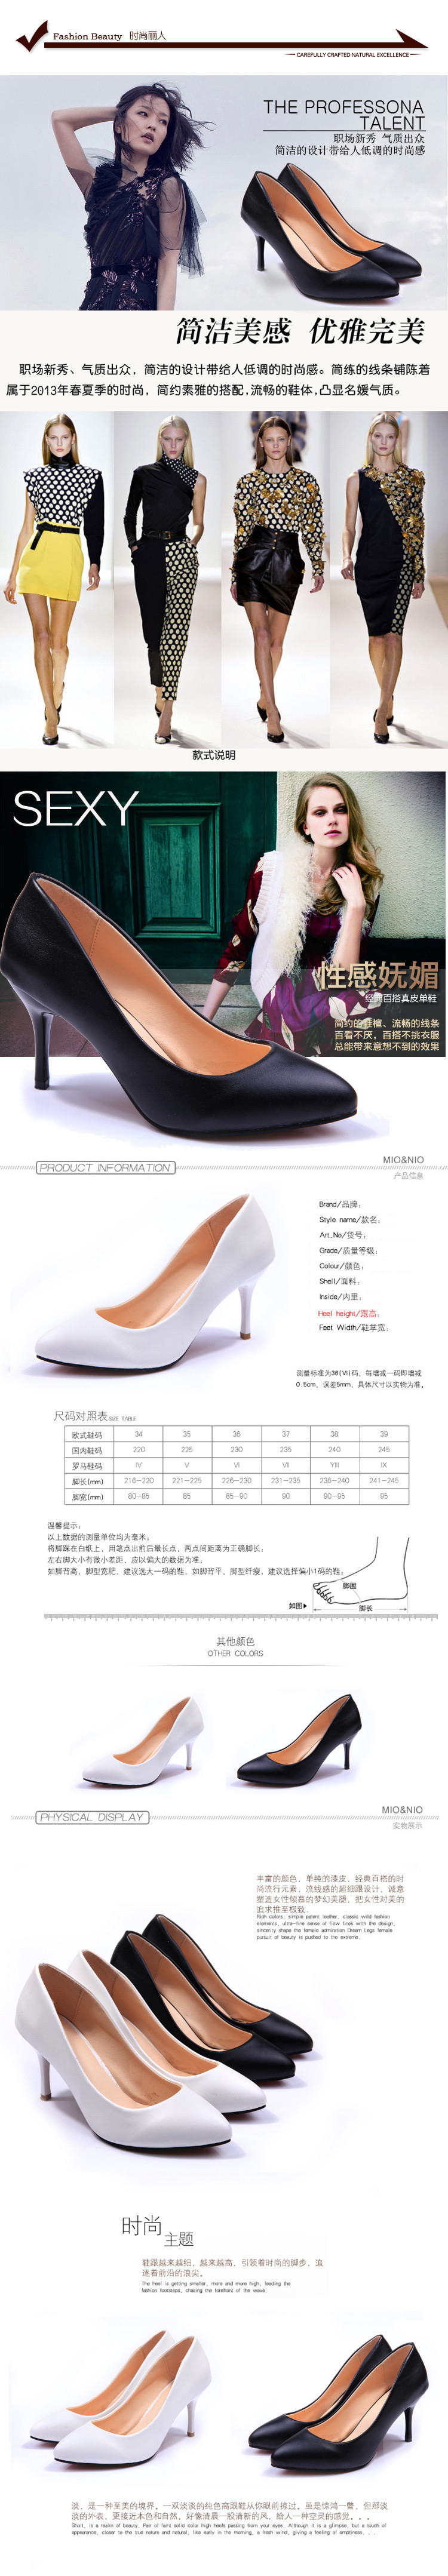 2016 New Fashion high heels 6CM patent leather pointed toe women pumps Party/Wedding/Work sexy ladies stiletto shoes 706